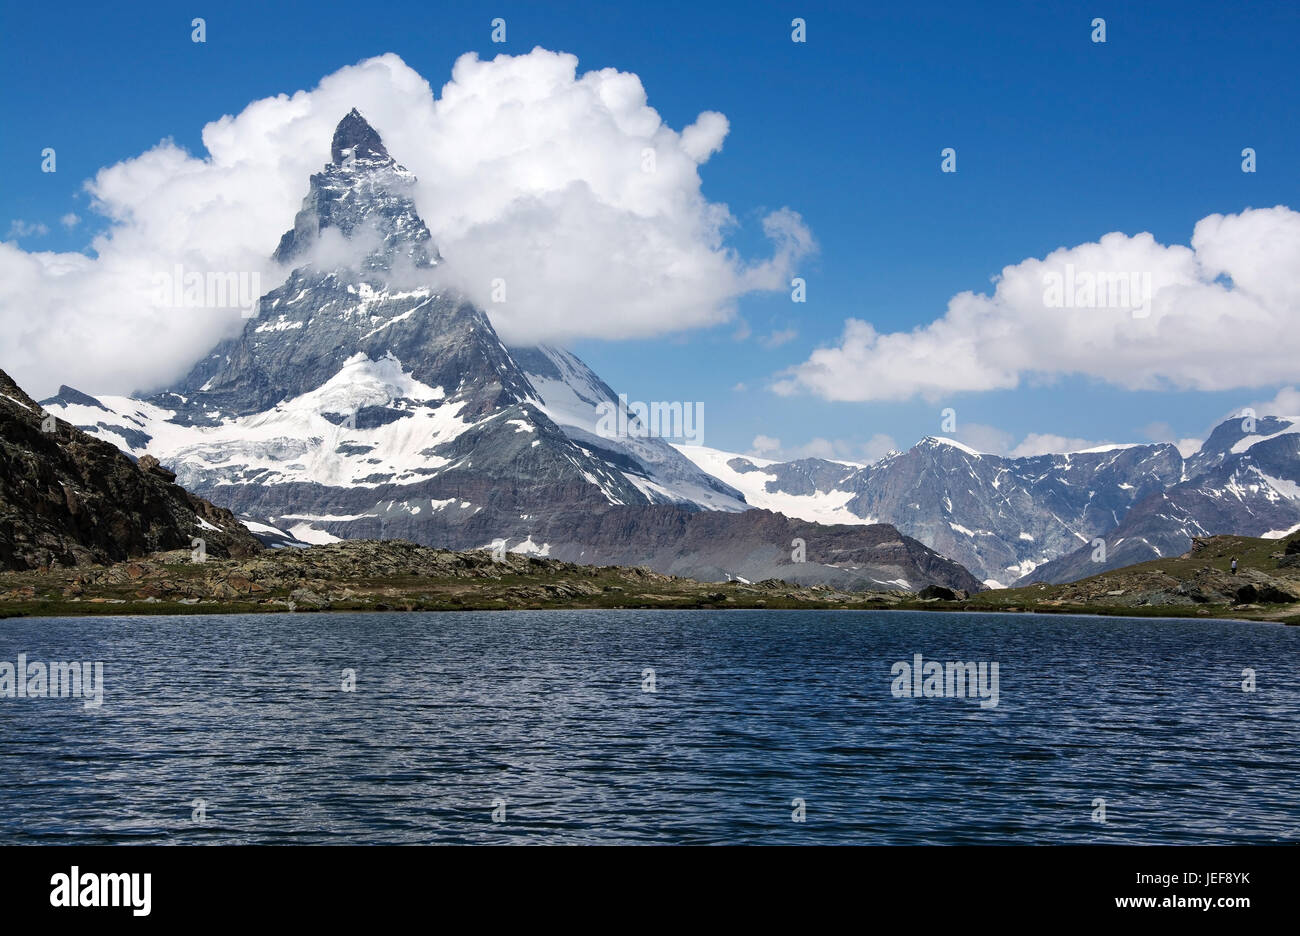 The Matterhorn in Switzerland is one of the highest mountains of the Alps with 4478-metre height., Das Matterhorn - Stock Image